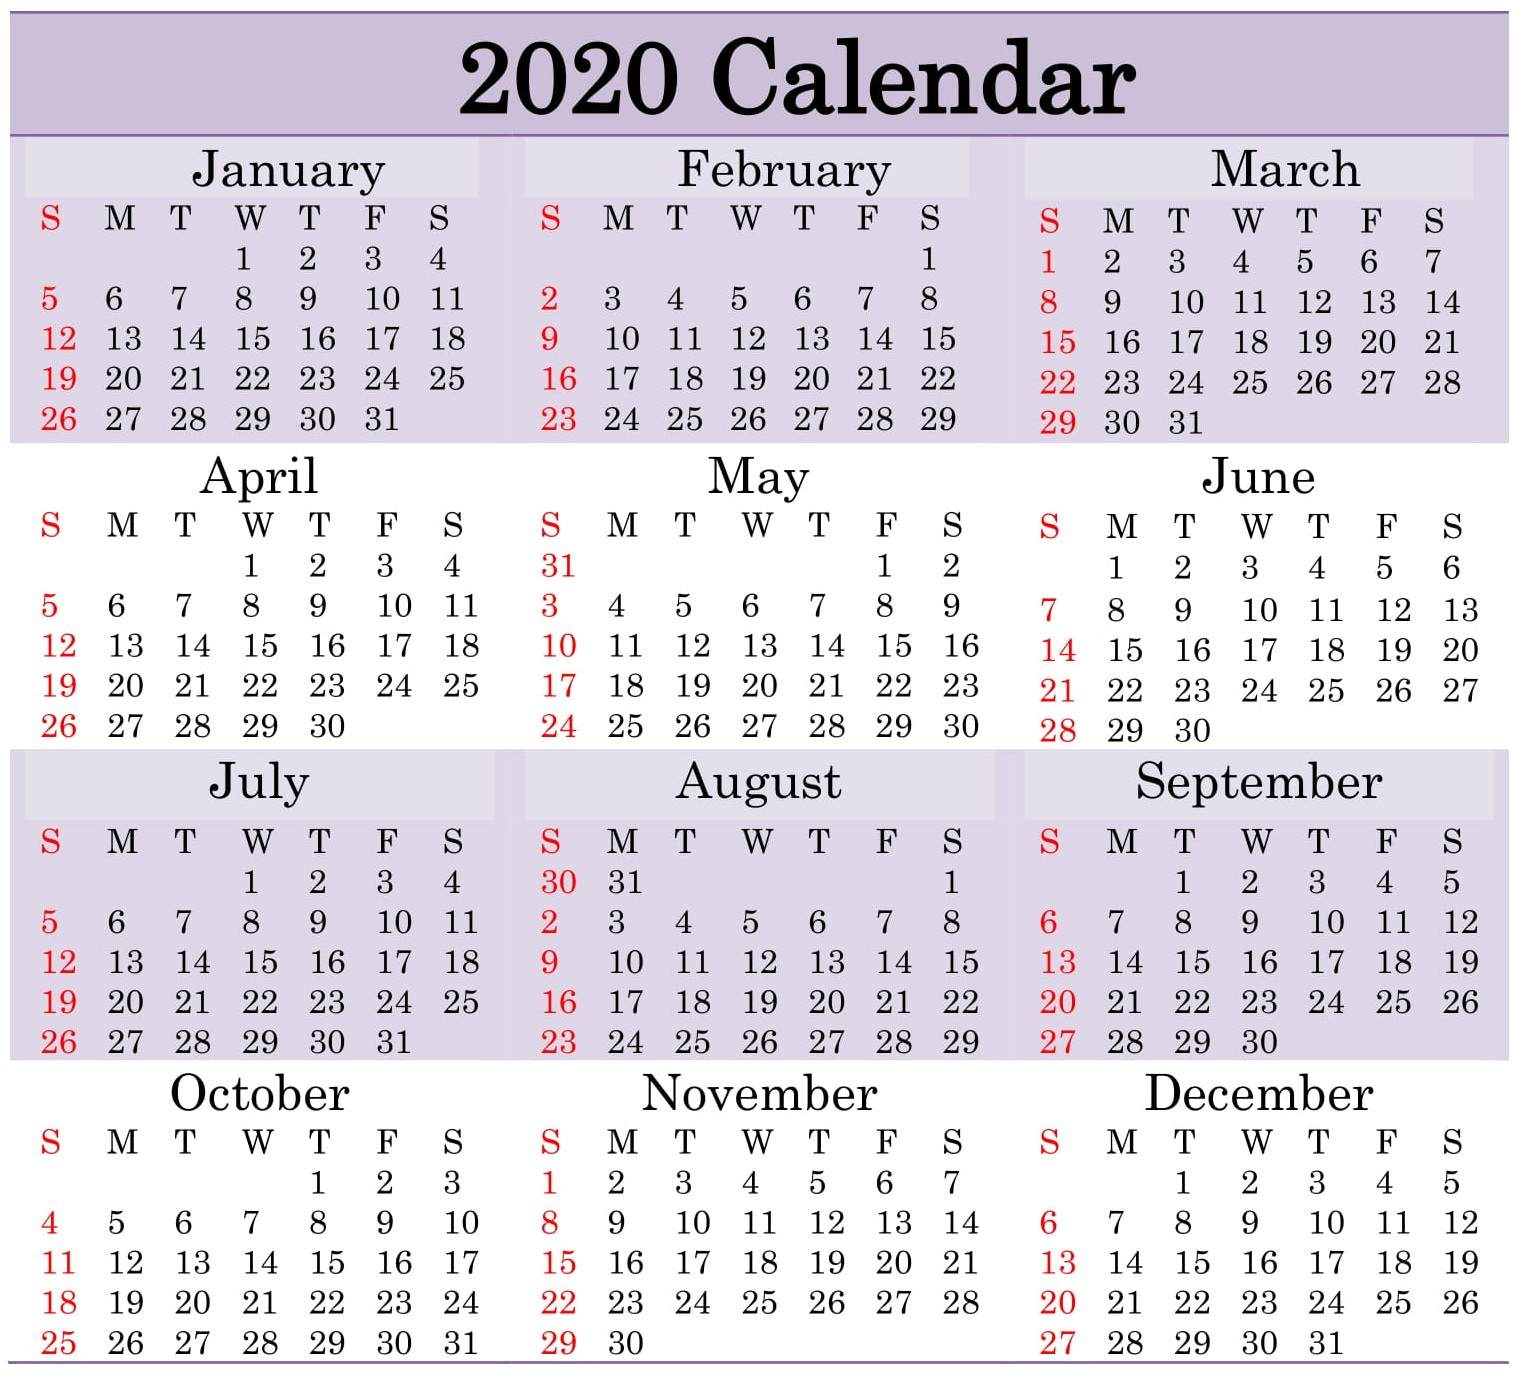 Printable 2020 Calendar Word Document  Latest Printable inside Printable Julian Date Calendar